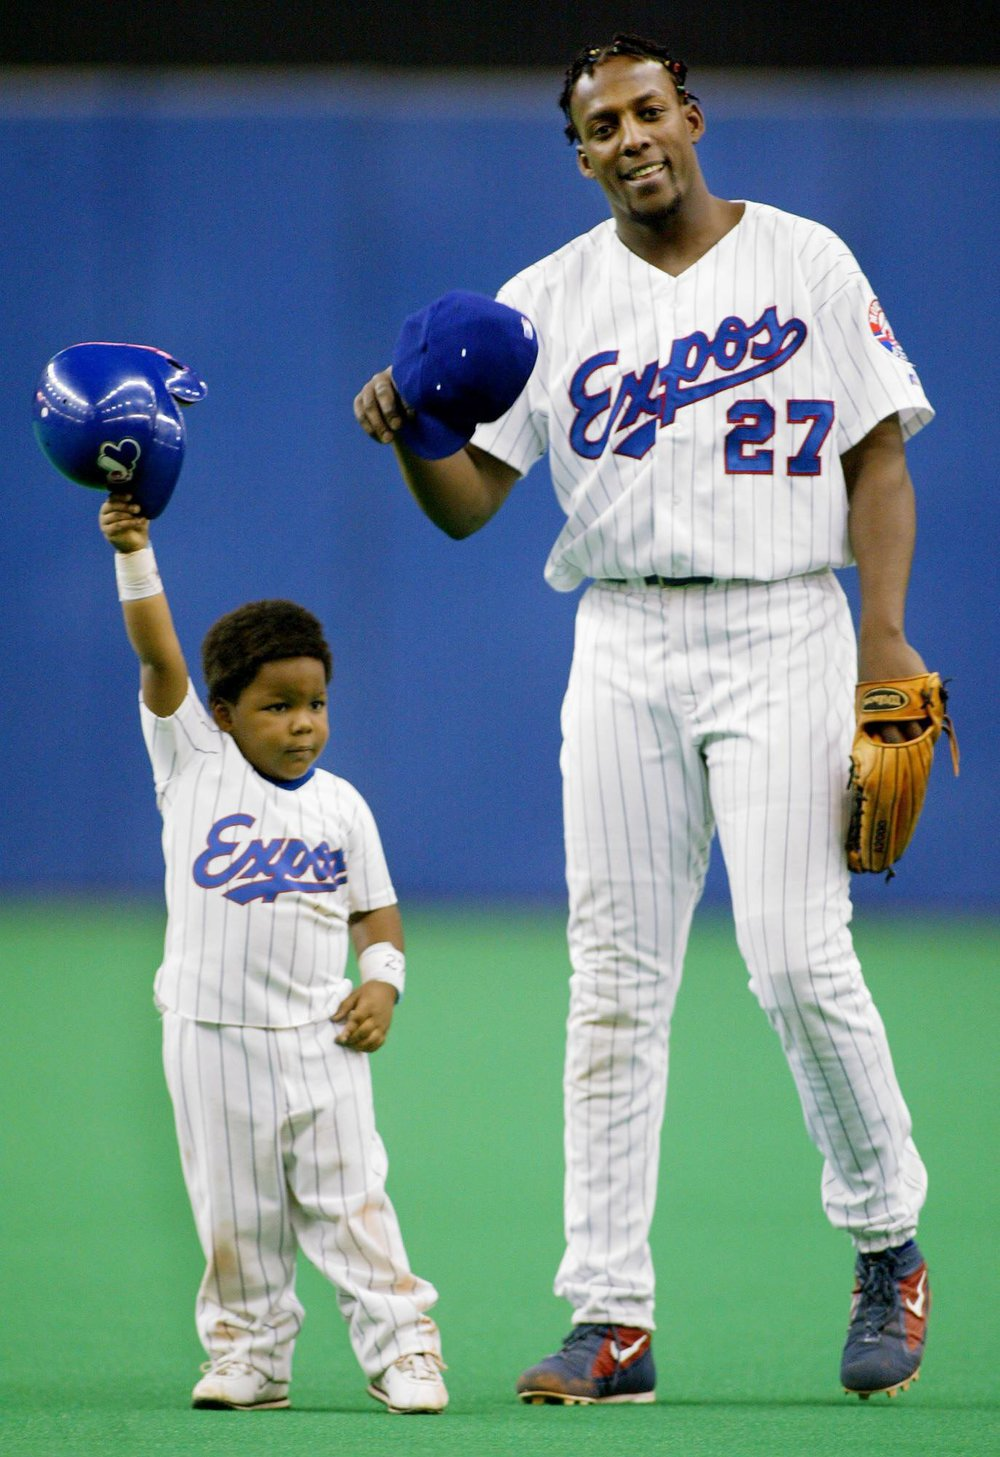 There won't be a reunion of Vladimir Guerrero Jr. (left) and his dad (right) at Olympic Stadium on Monday or Tuesday when the Toronto Blue Jays play two exhibition games at The Big O. Photo: Paul Chiasson, AP